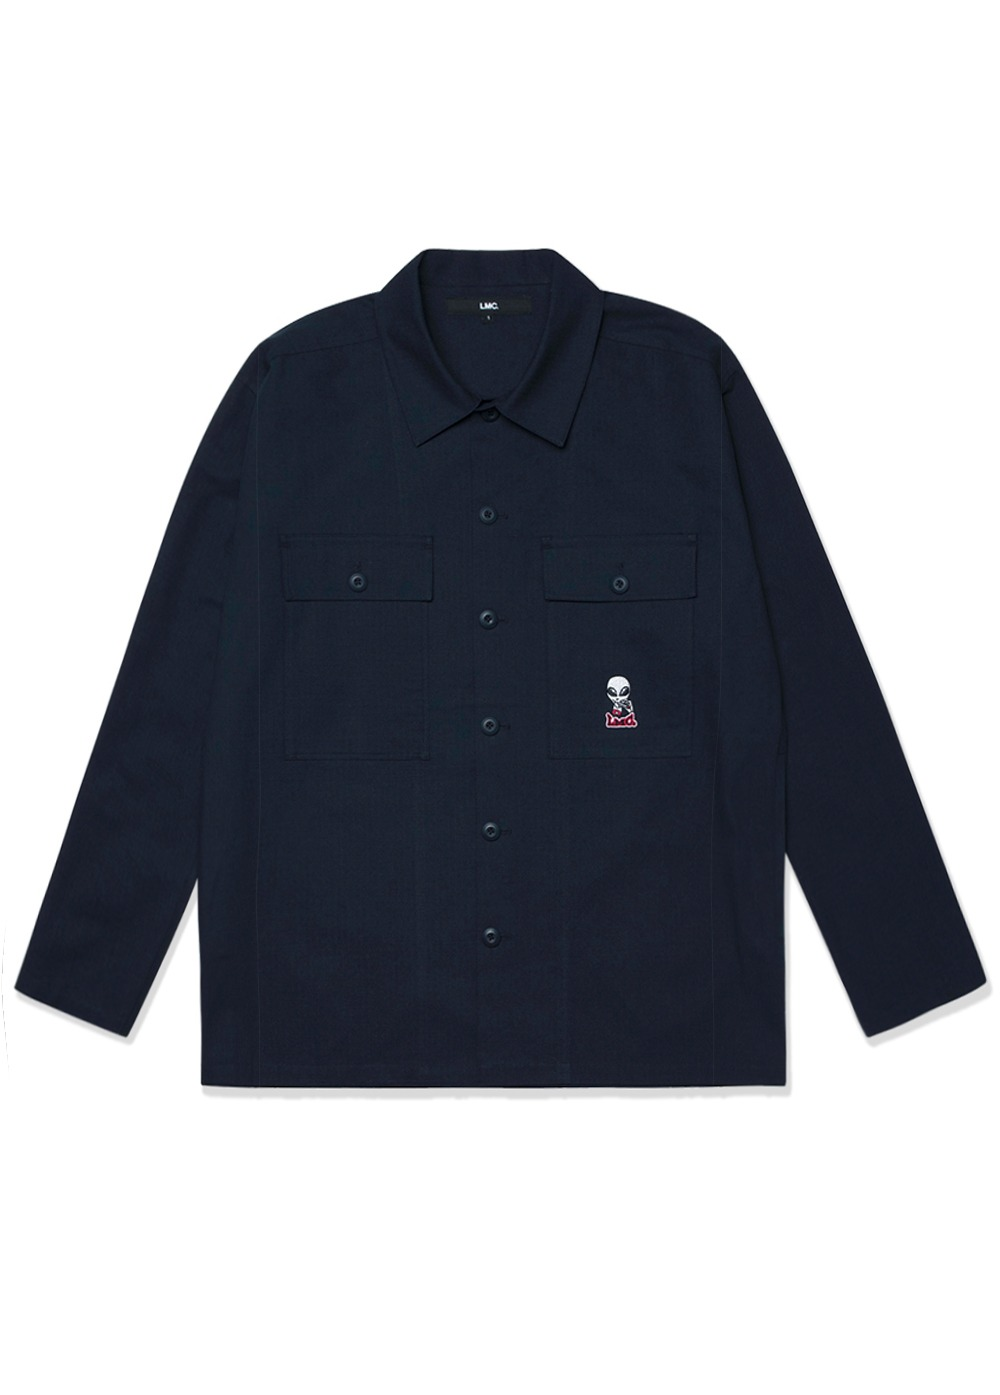 LMC RIPSTOP FATIGUE SHIRT navy